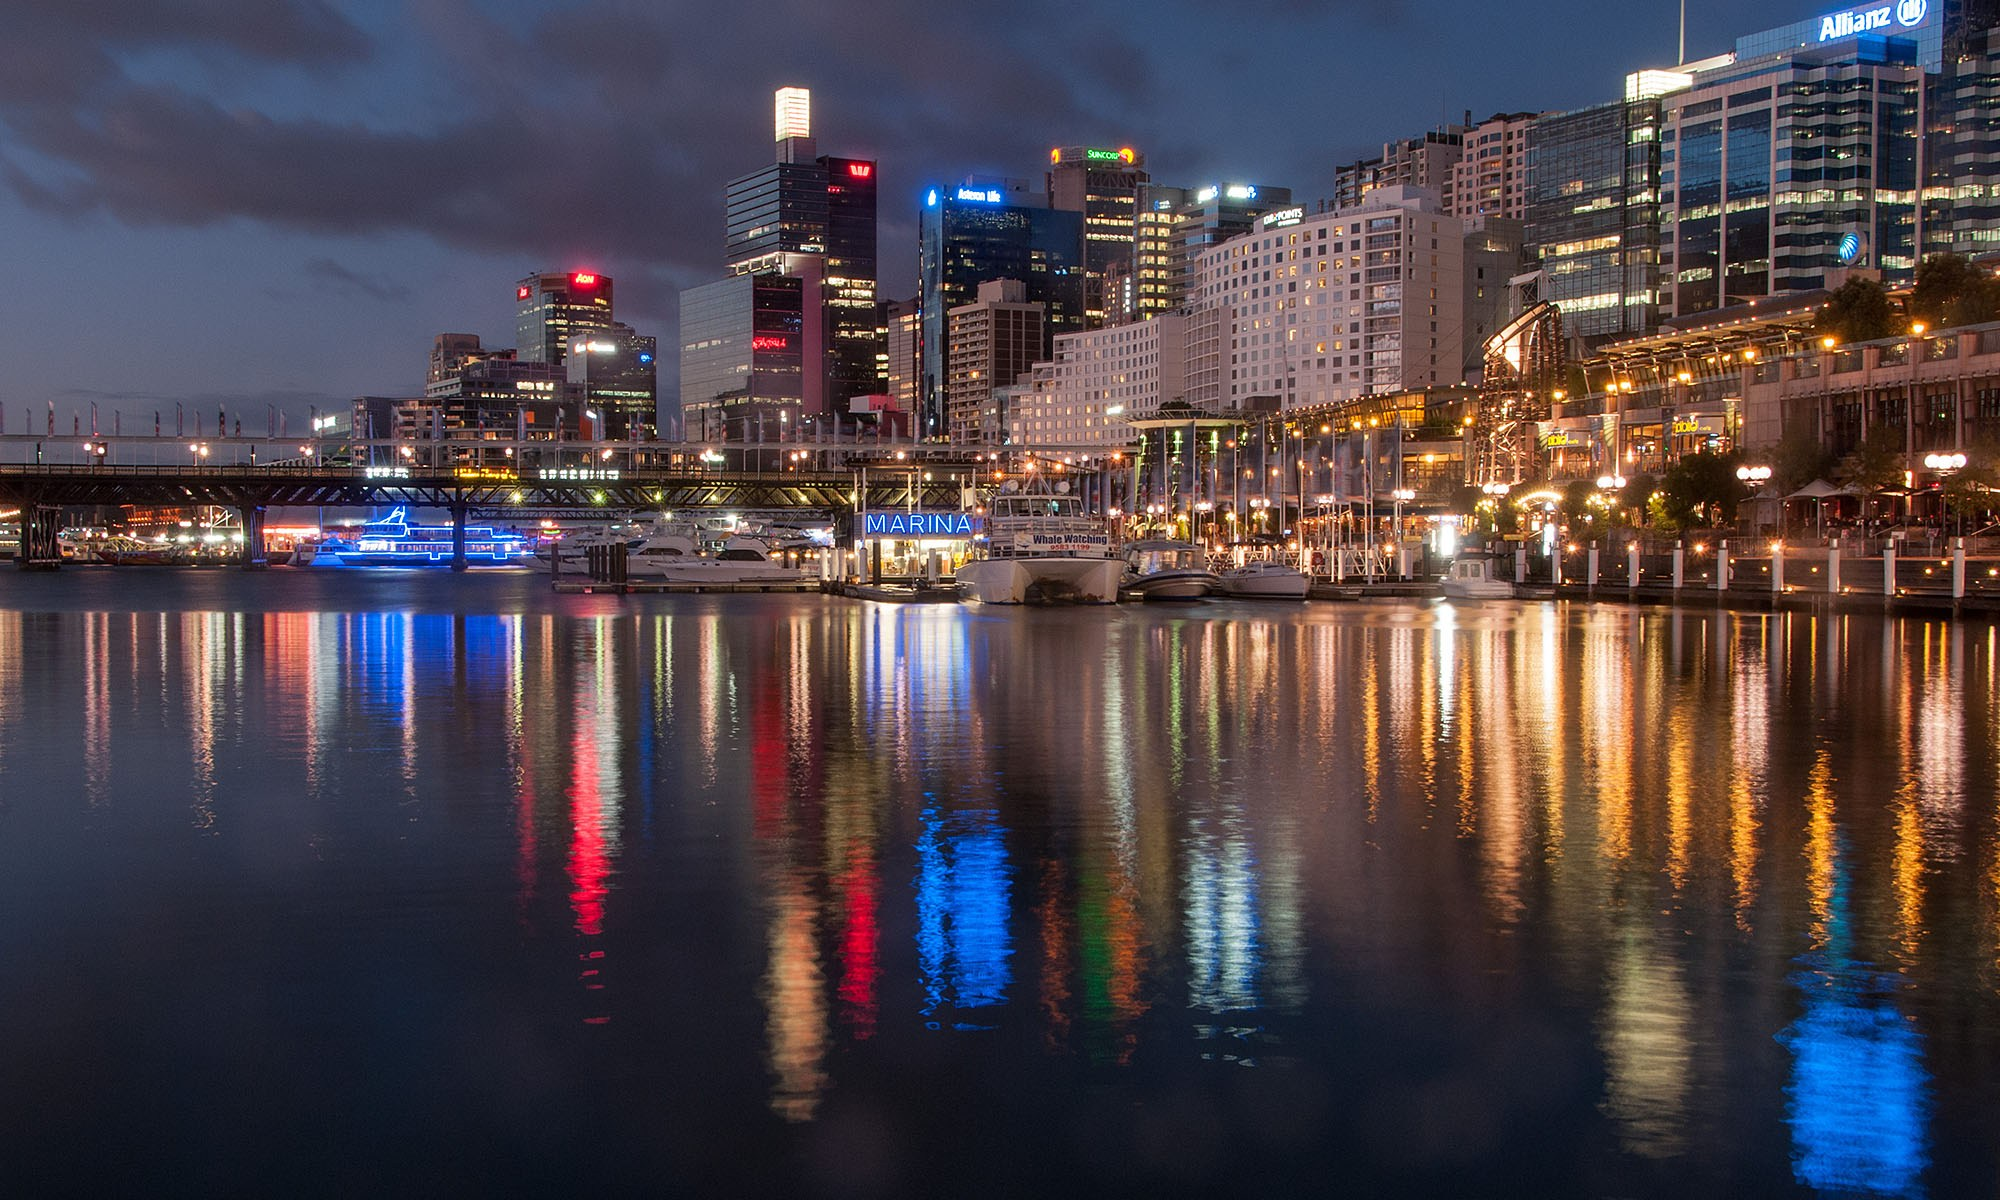 Darling Harbour Marina at Night